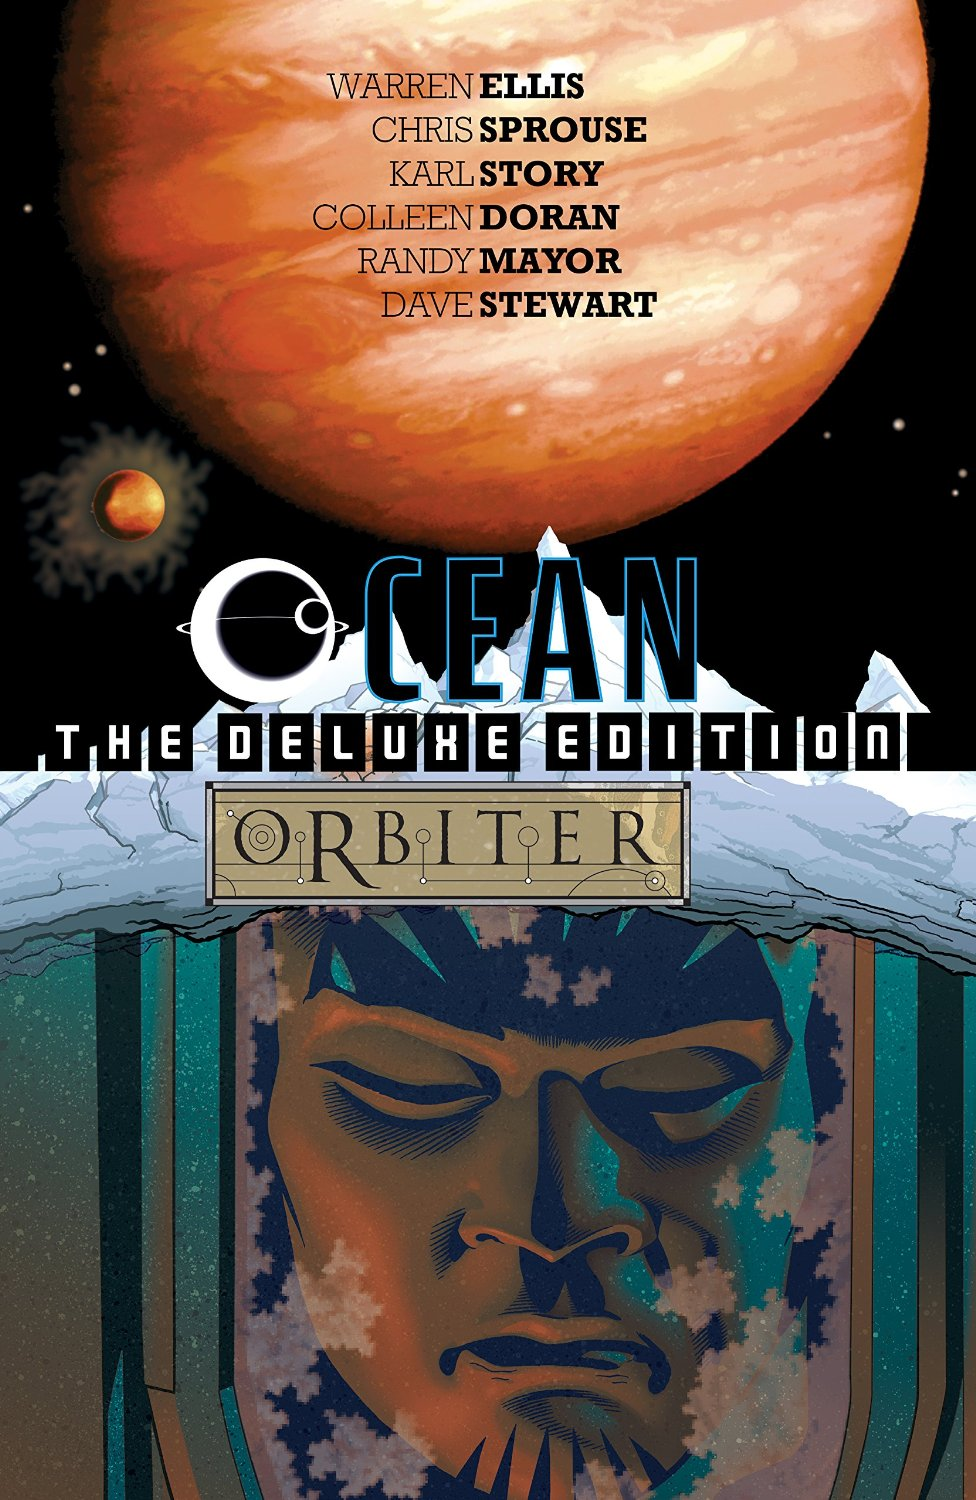 Ocean/Orbiter: Deluxe Edition (Collected)